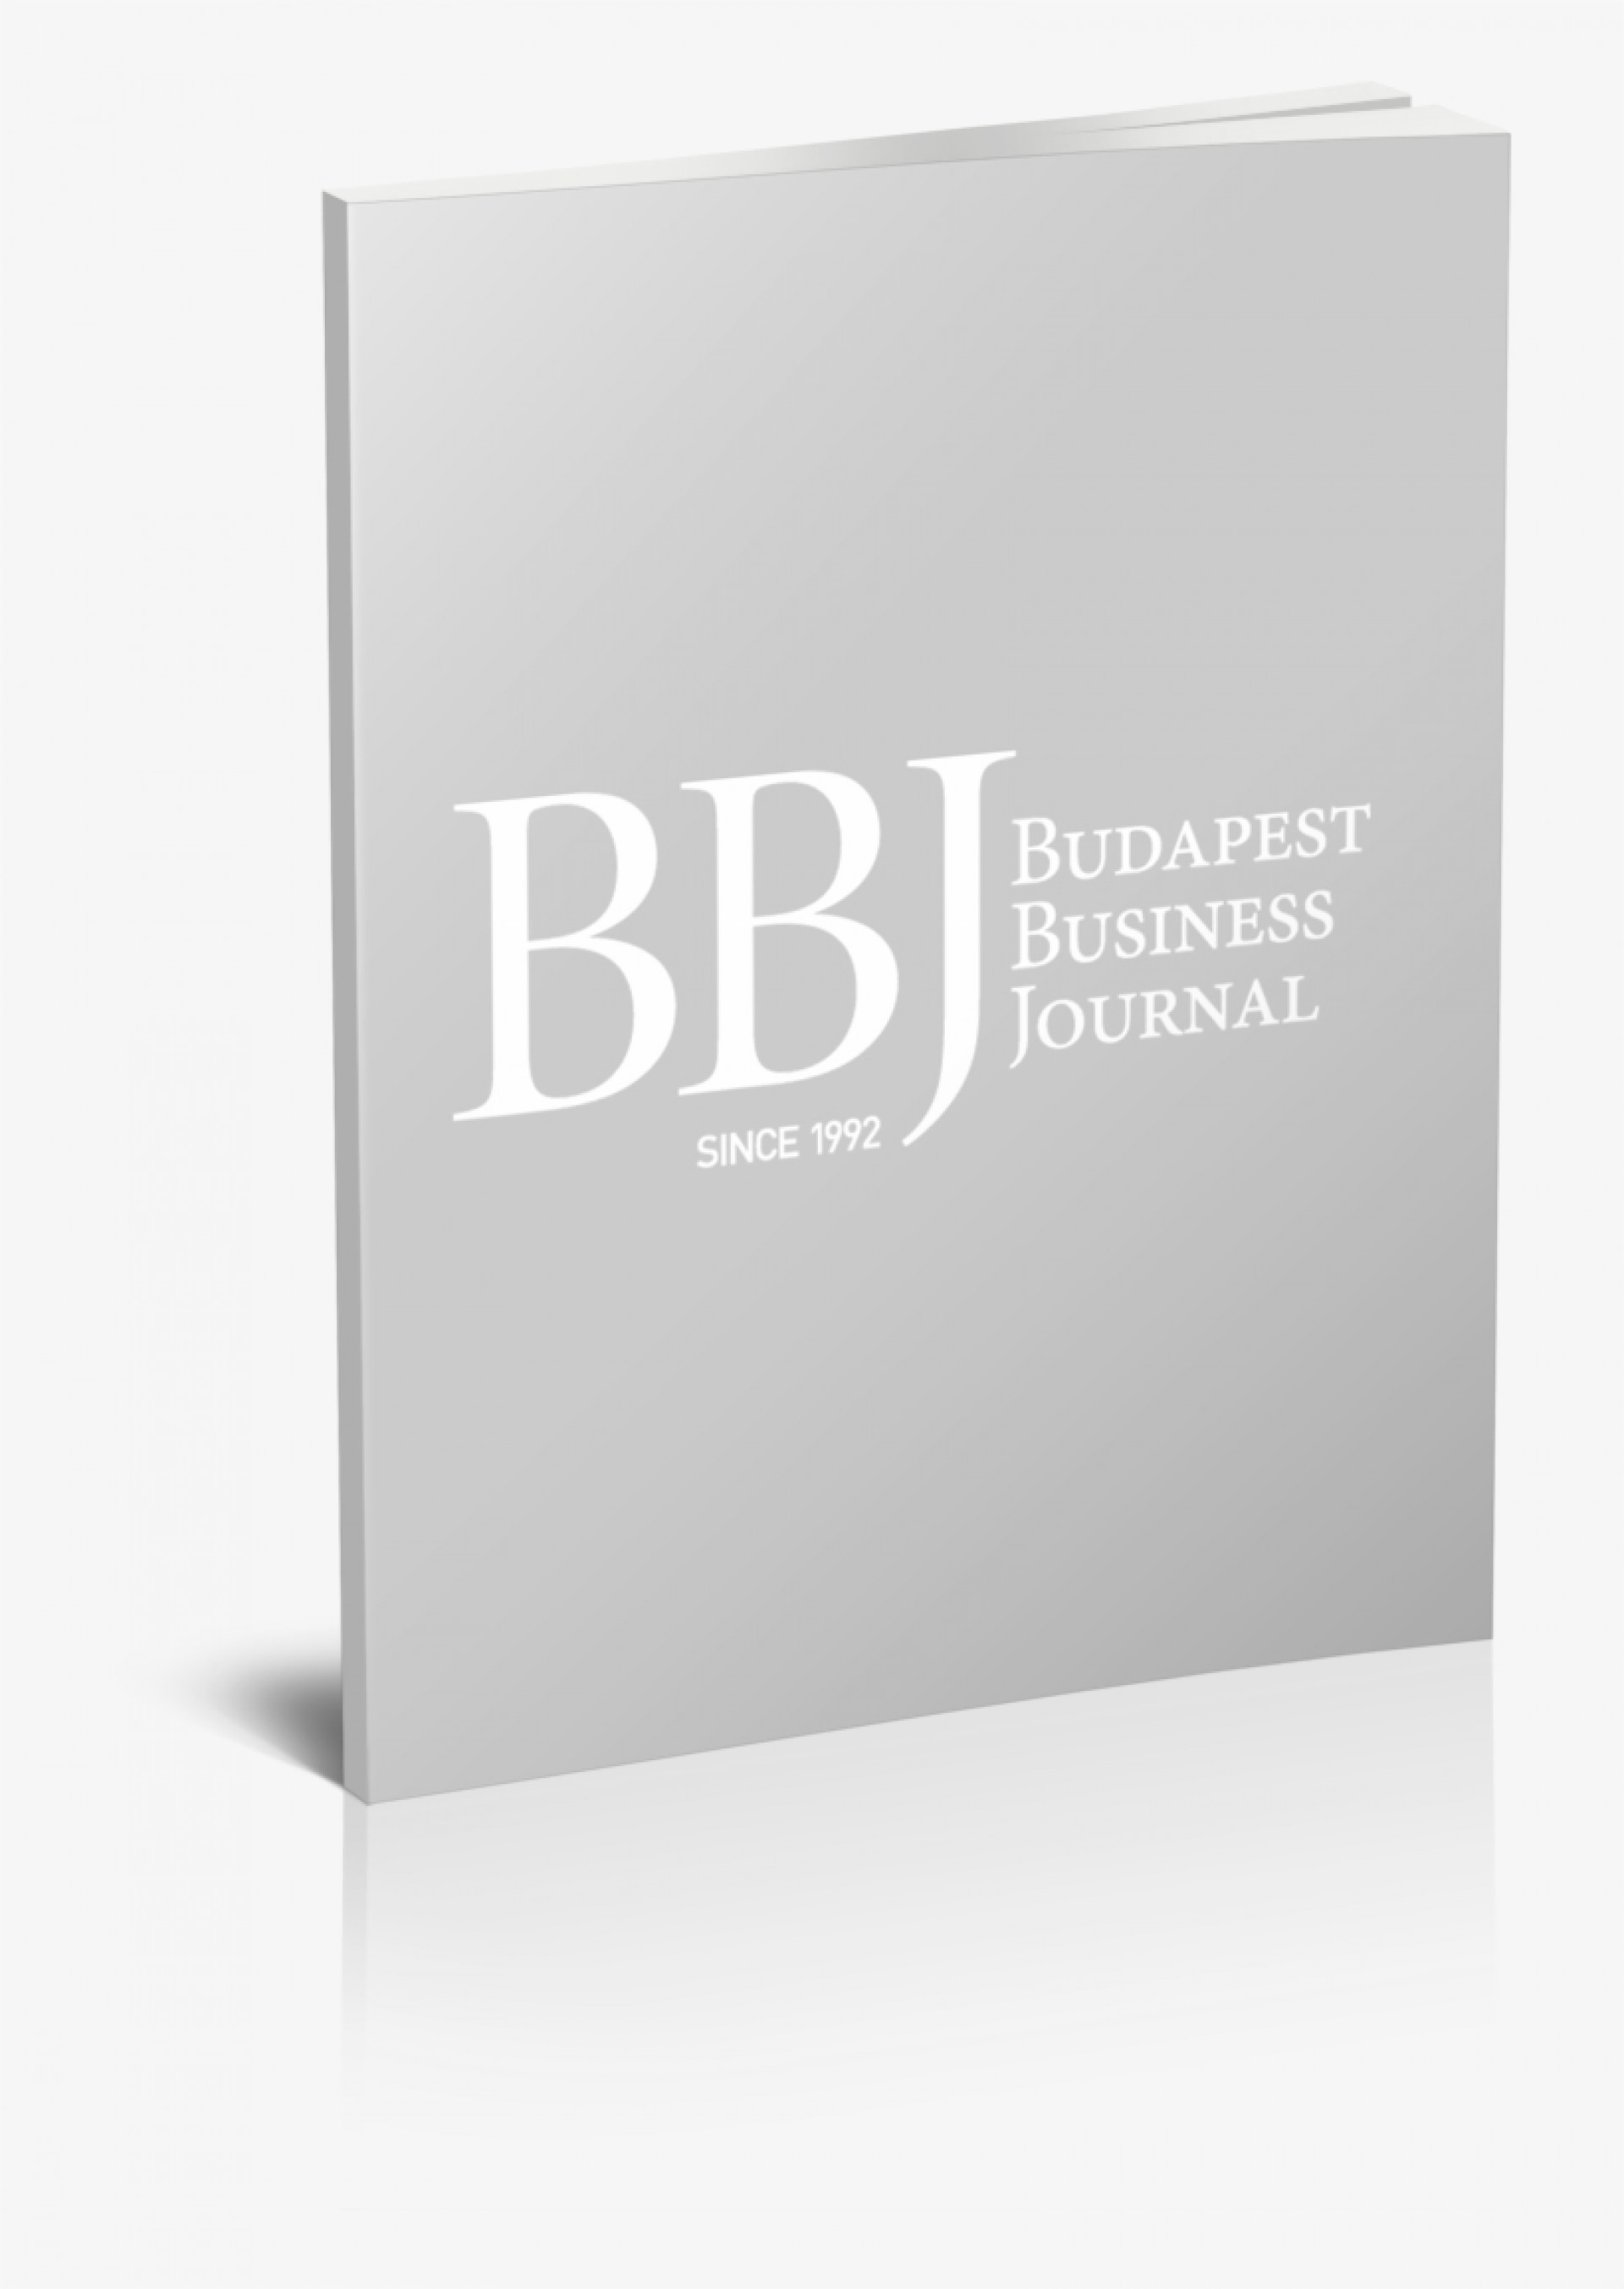 007 Template Ideas 4066015 Luxury Budapest Ebook Cover Png Free Best.